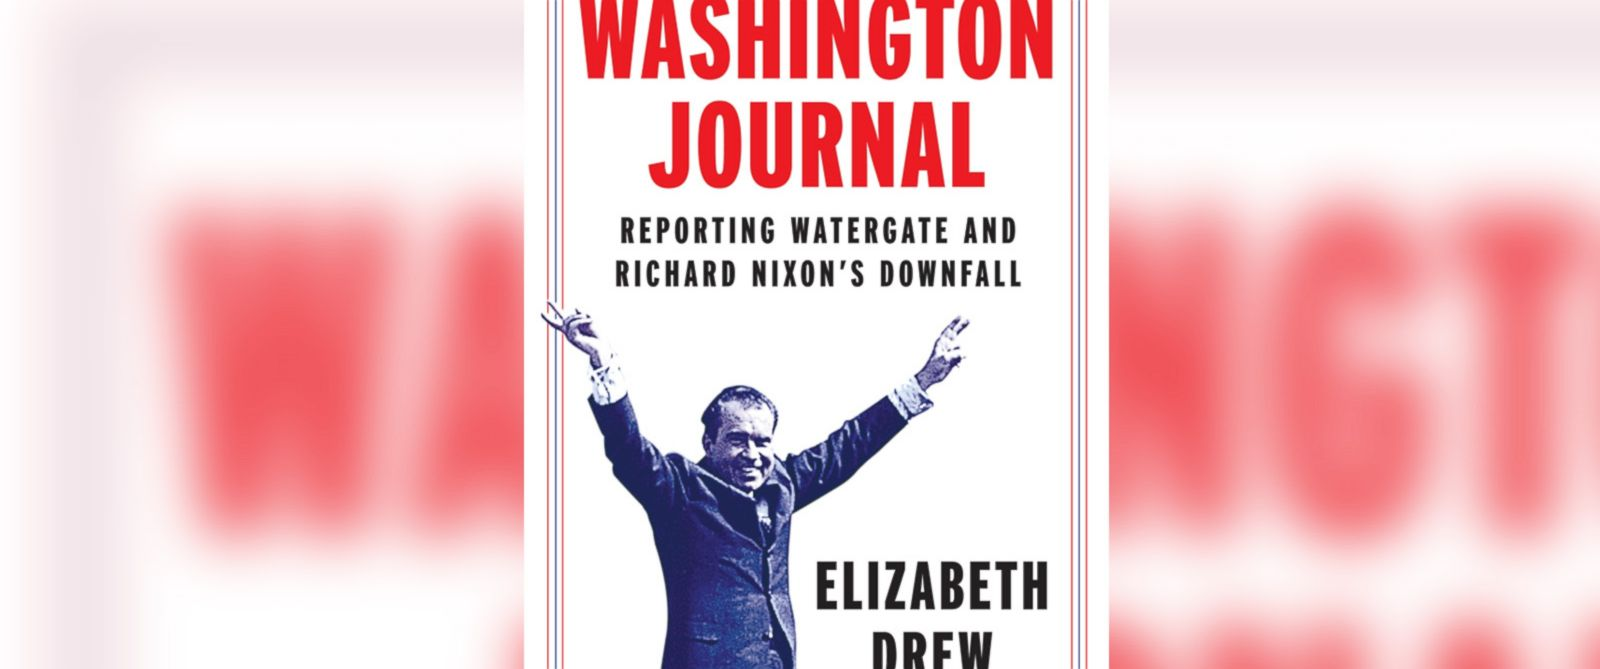 PHOTO: The book cover for Washington Journal by Elizabeth Drew.